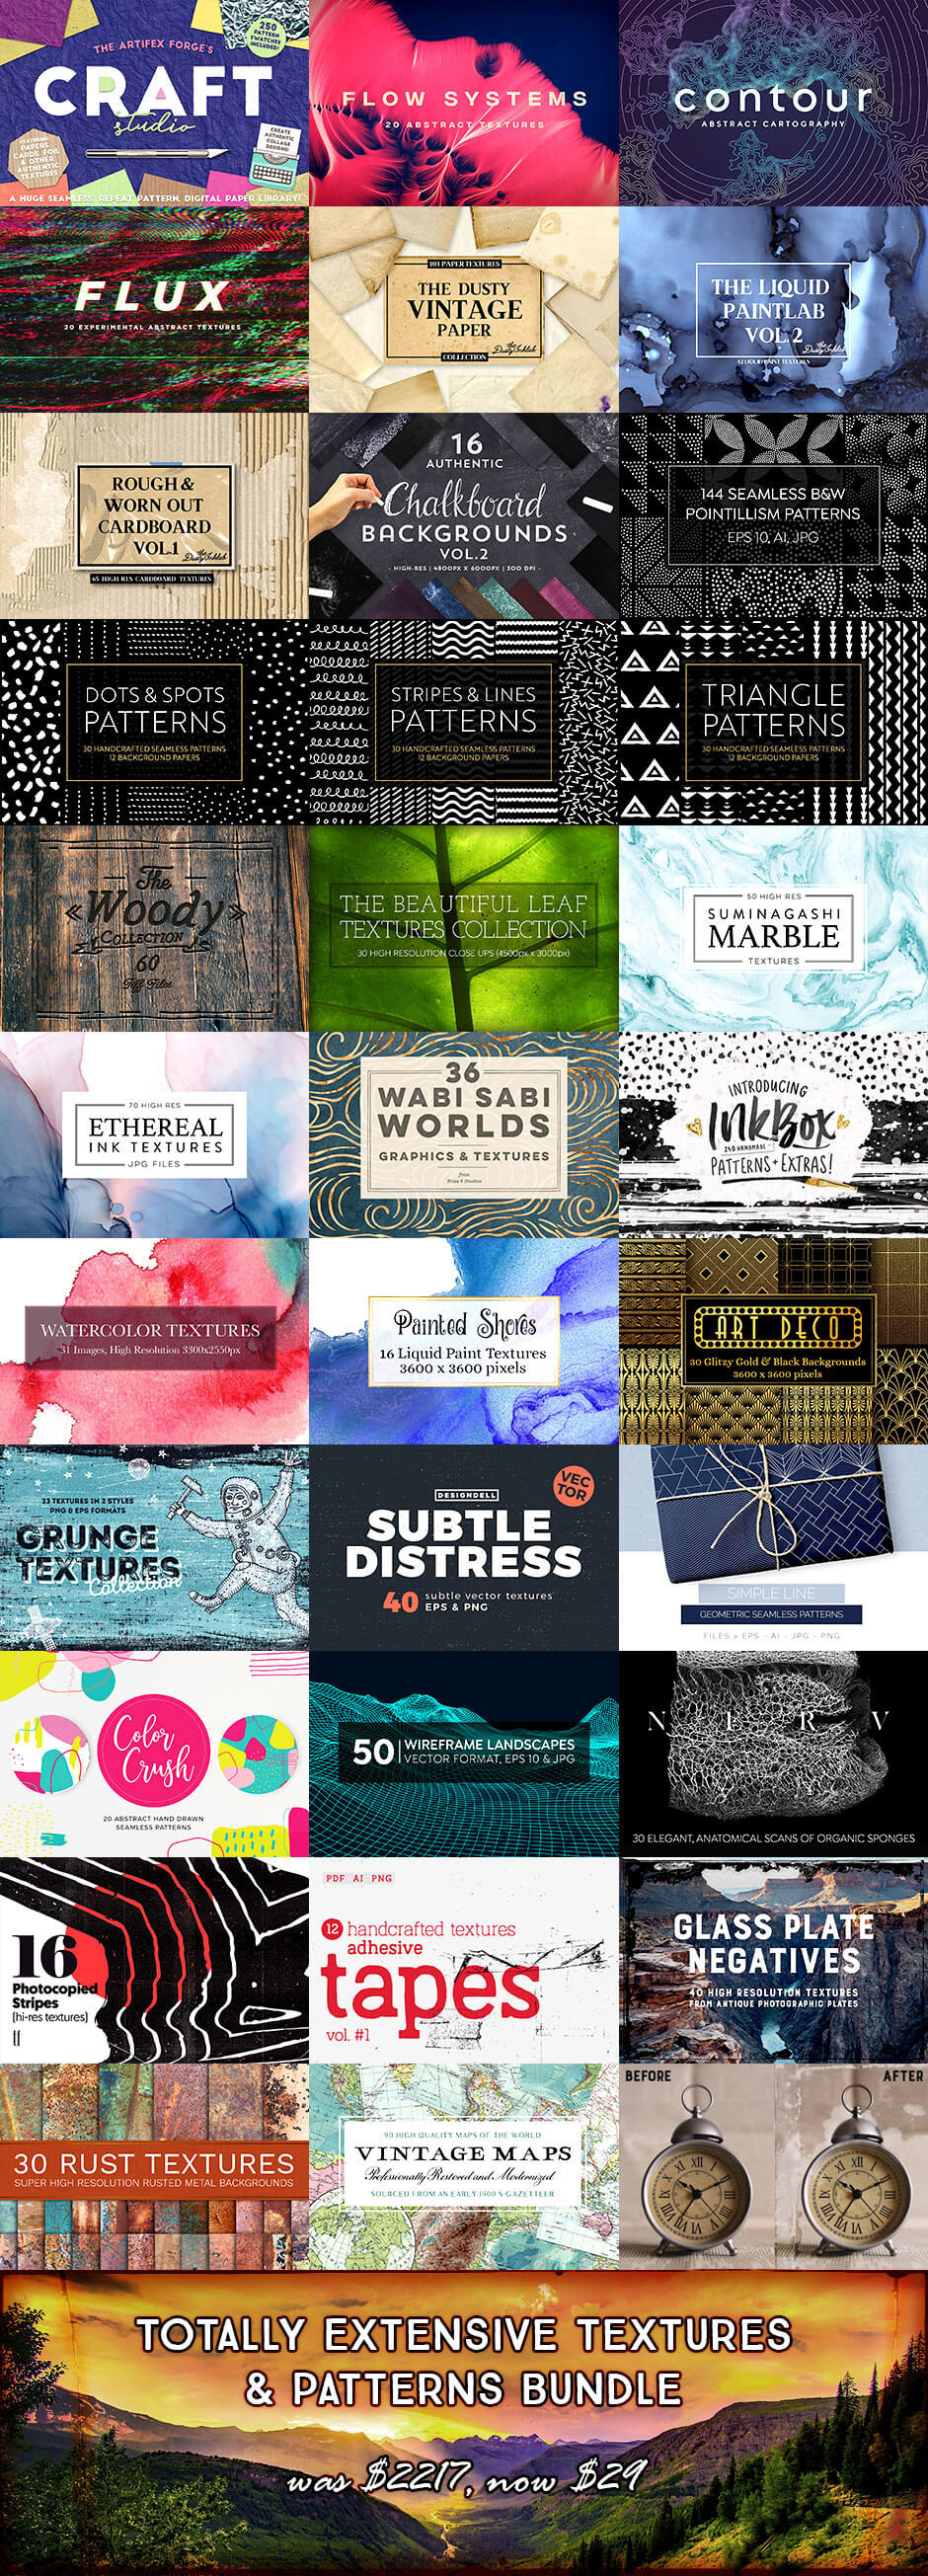 product_grid_-_totally_extensive_textures_and_patterns_bundle-1